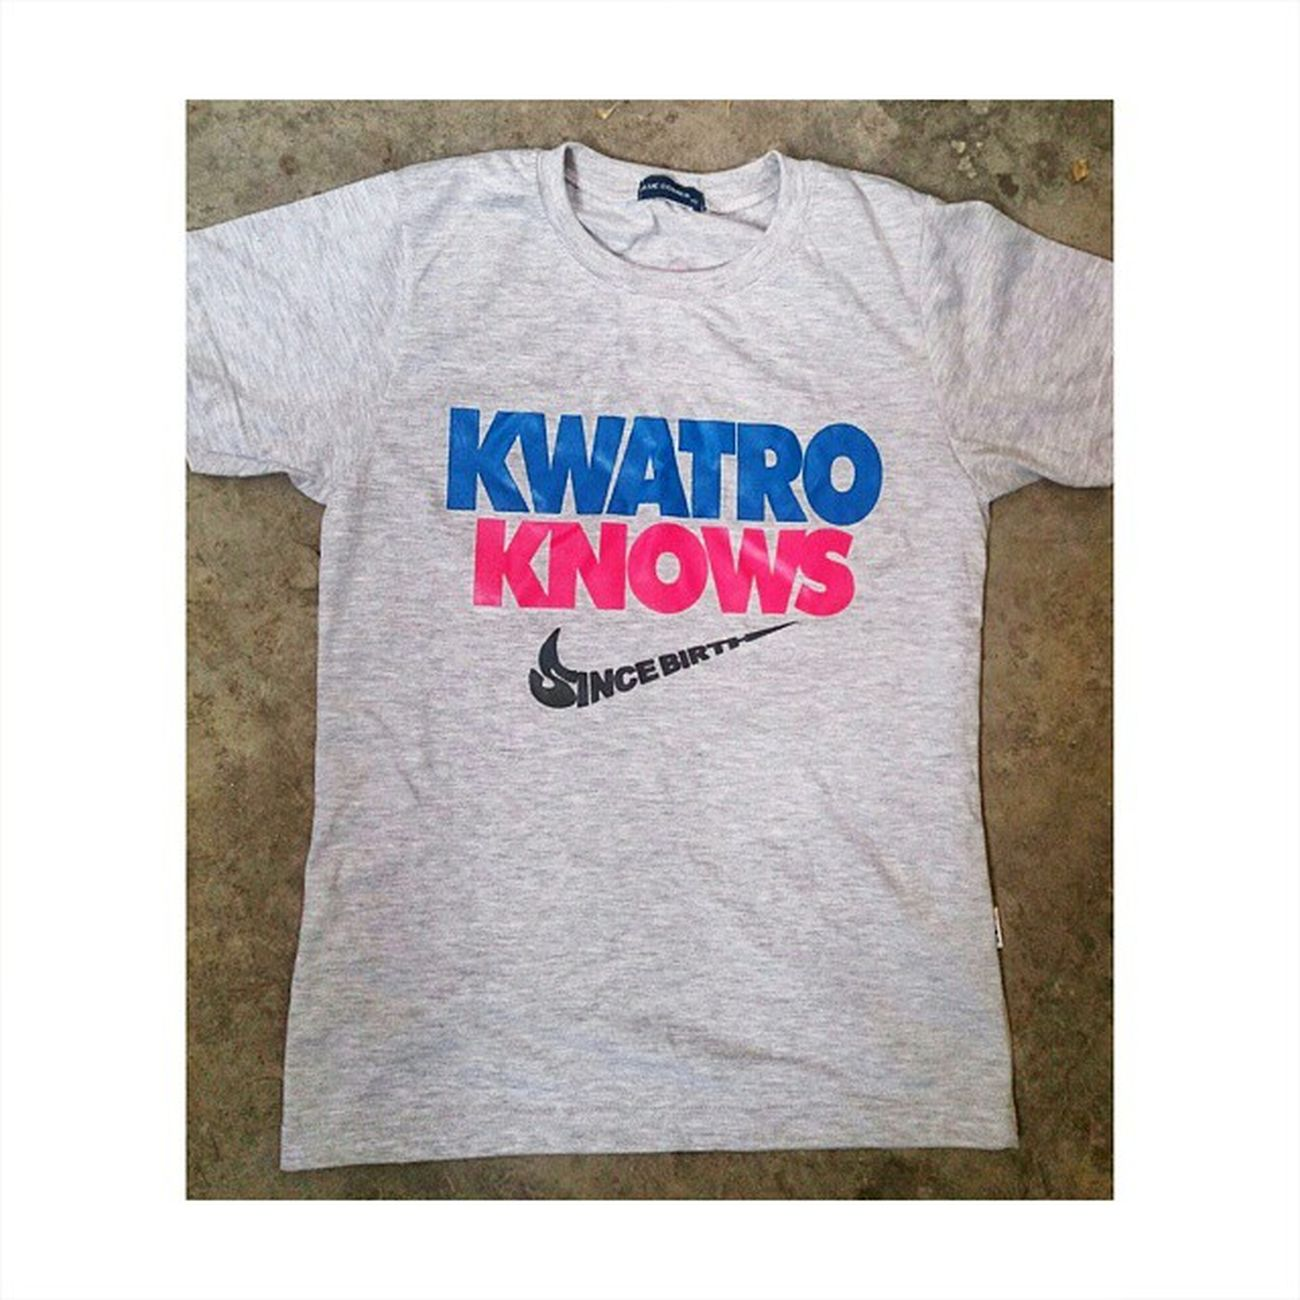 Thank you po for this shirt! Even though I wasn't born nor even grew up in San Gregorio, still it feels like I did. Salamat po ng marami! Thanks for making me a part of the family Purok Kwatro! ツ Happykiddo Sangregorio PurokKwatro KwatroKnows Fiesta Cabiao CabiaoNuevaEcija